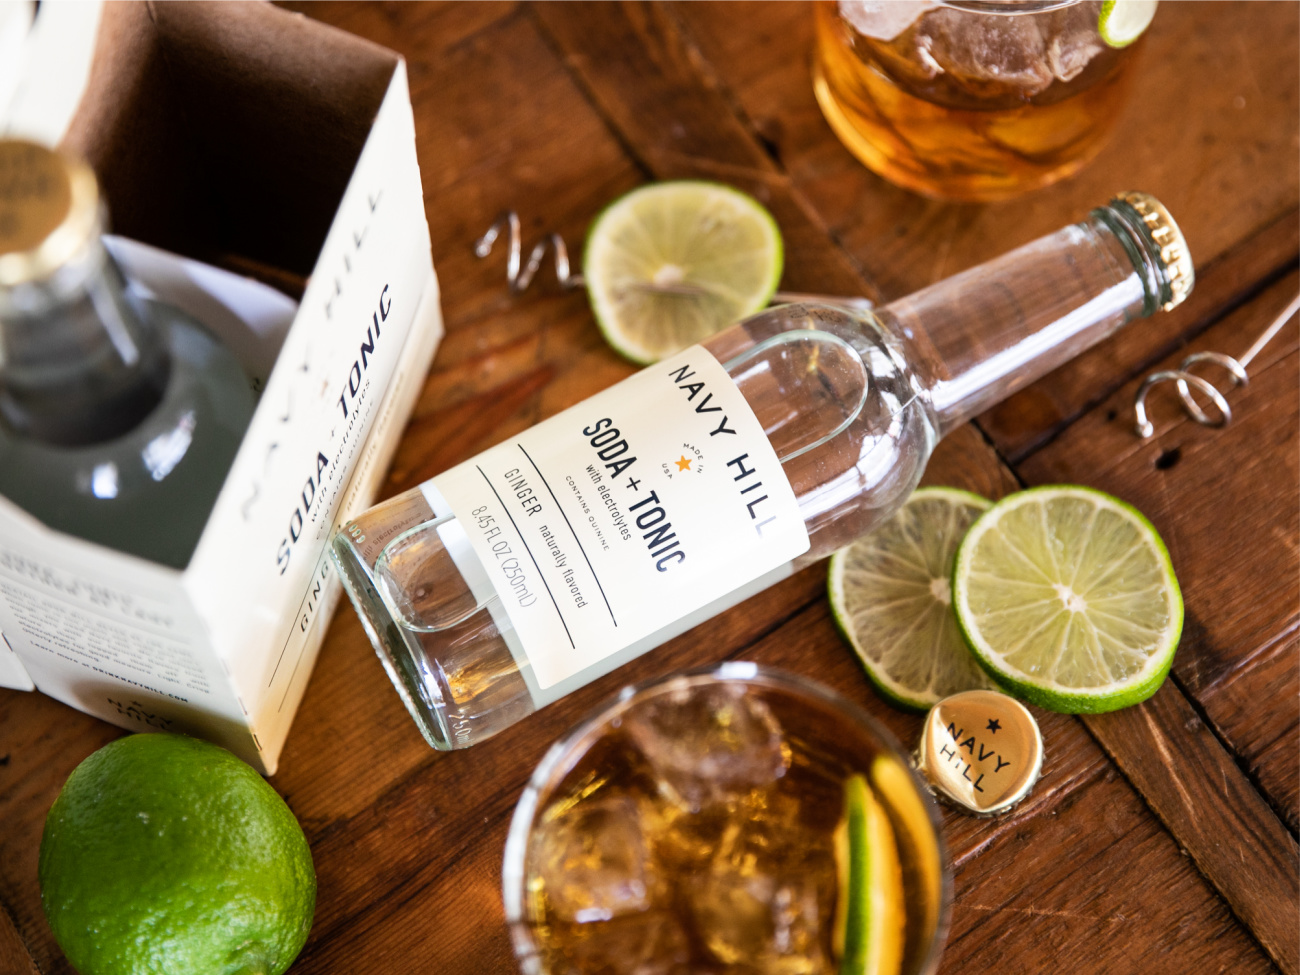 Huge Discount On Navy Hill Mixers At Publix – Save On A Delicious Soda + Tonic Blend! on I Heart Publix